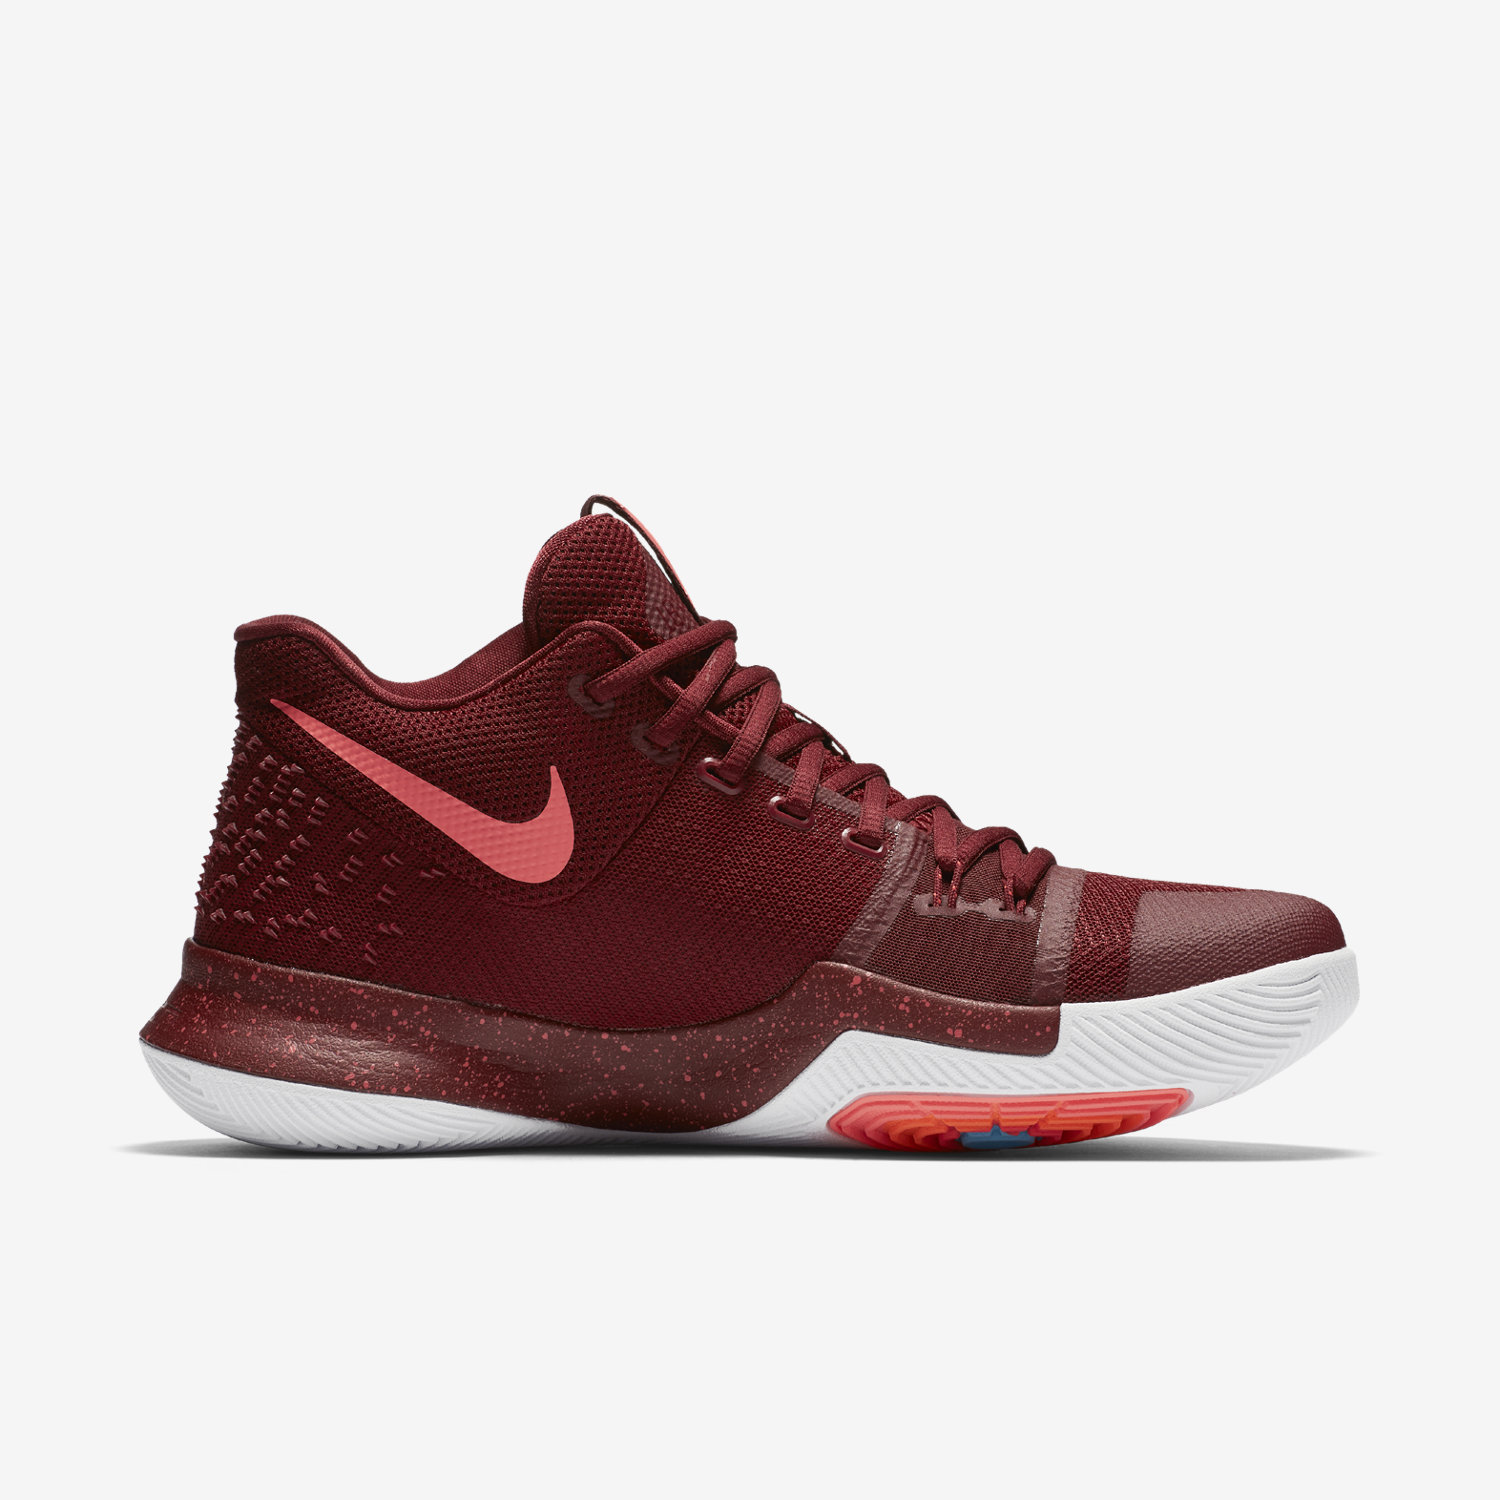 nike kyrie 3 shoes